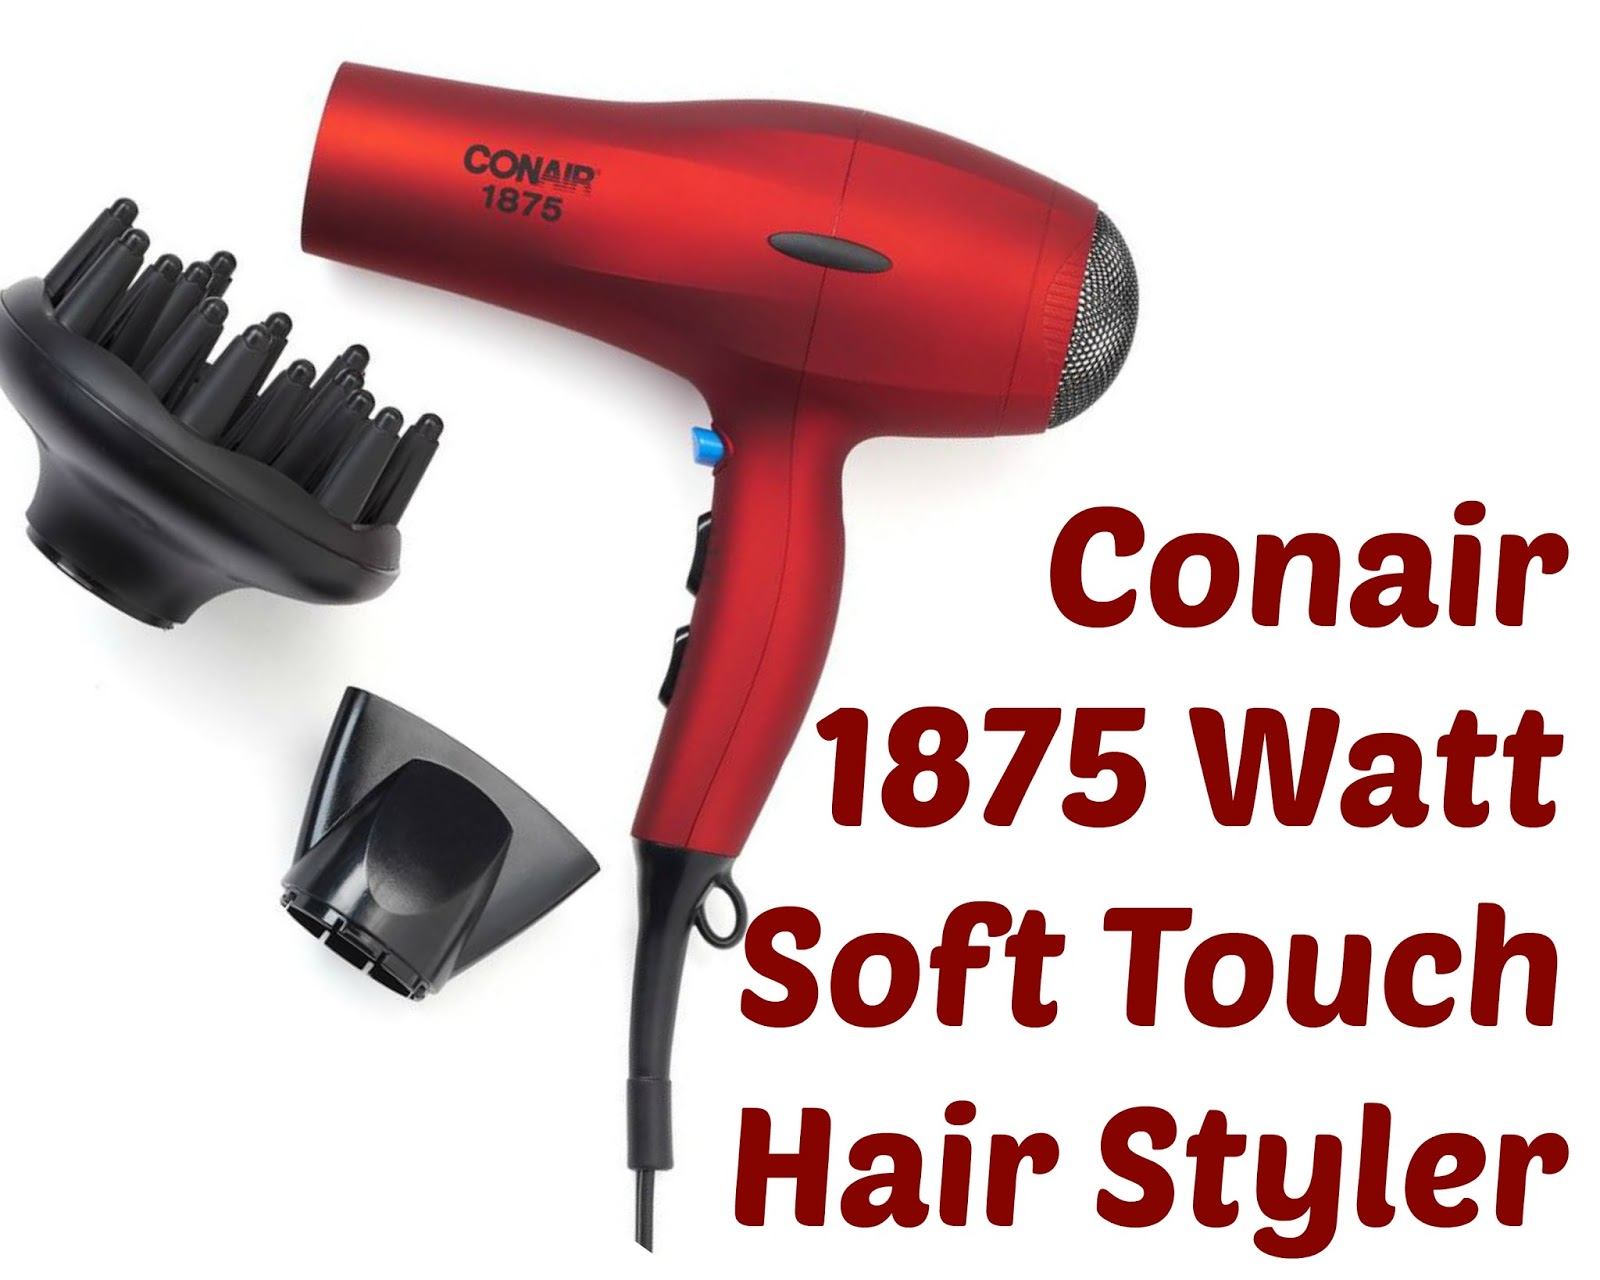 Click here to buy the Conair 1875 Watt Soft Touch Hair Styler for an inexpensive yet powerful hair dryer for natural hair